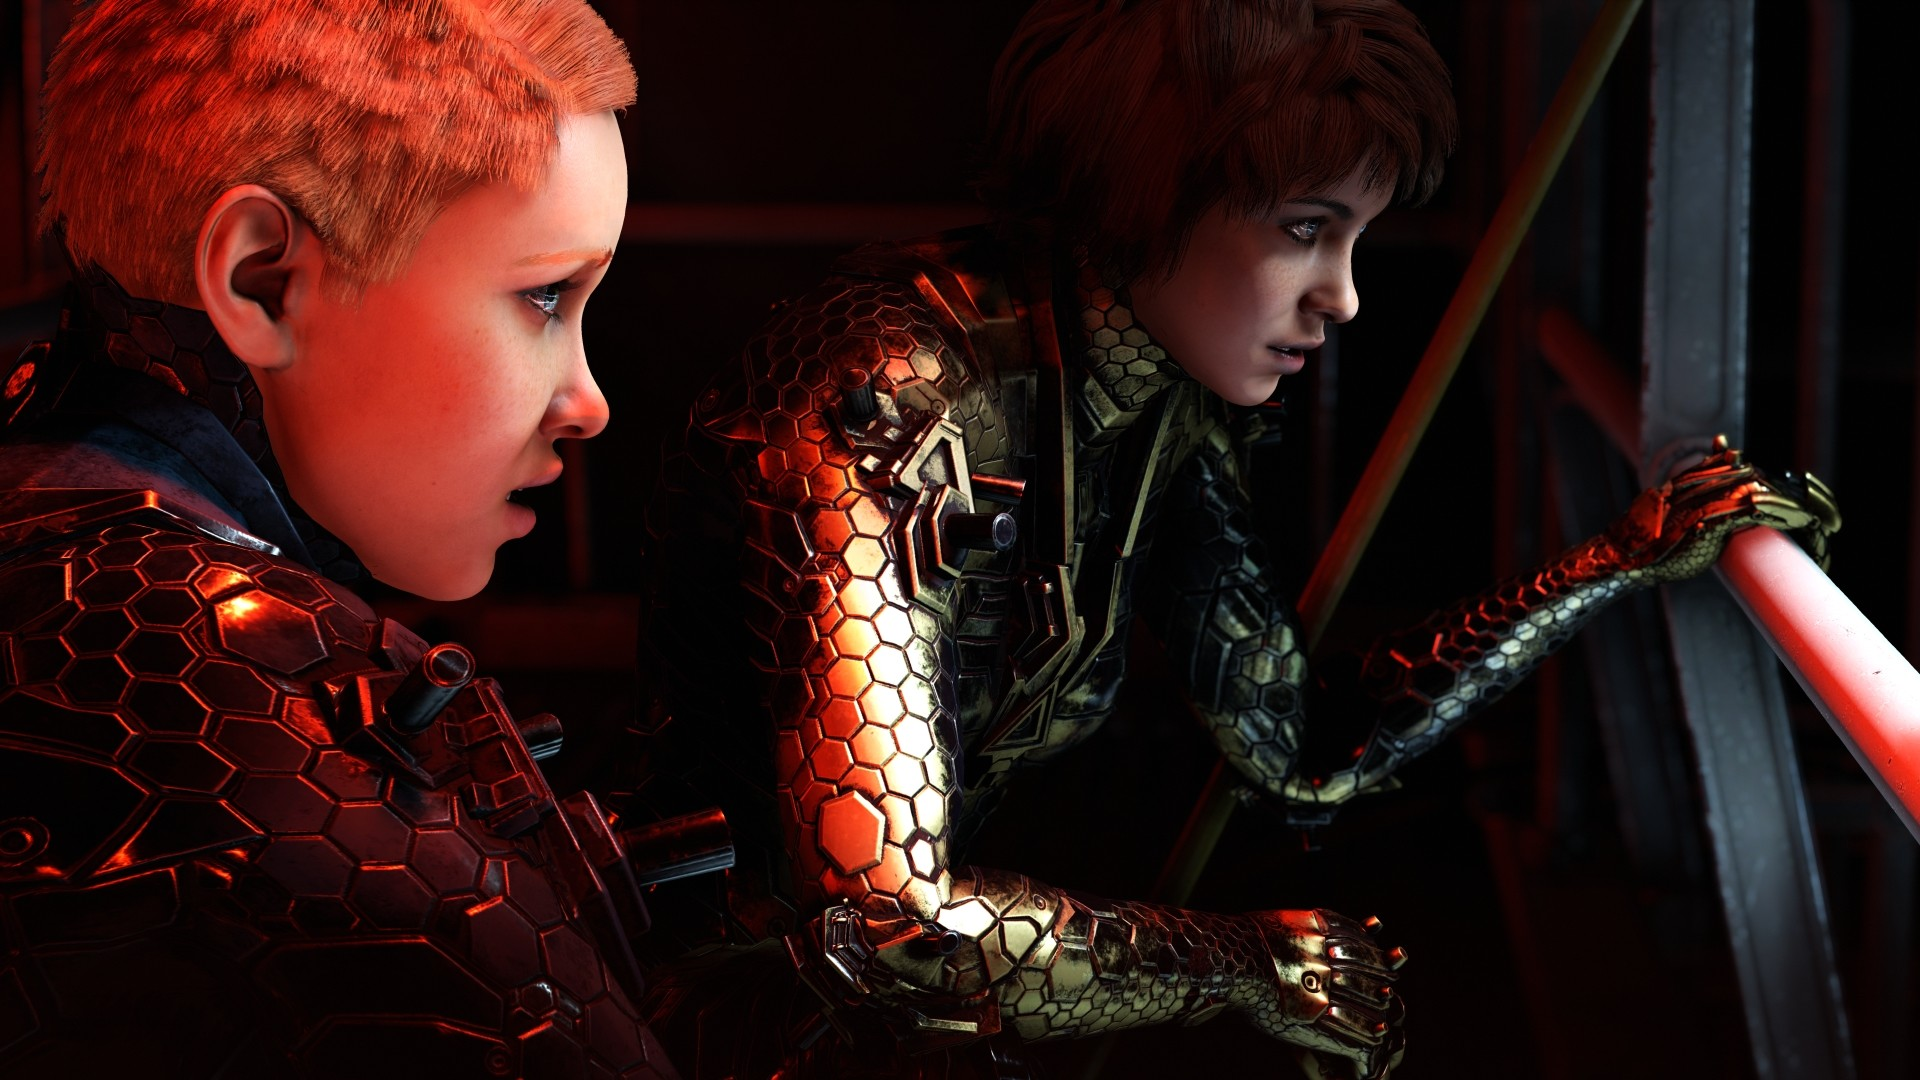 Скриншот *Wolfenstein: Youngblood [PS4] 5.05 / 6.72 / 7.02 [EUR] (2019) [Русский] (v1.06)*